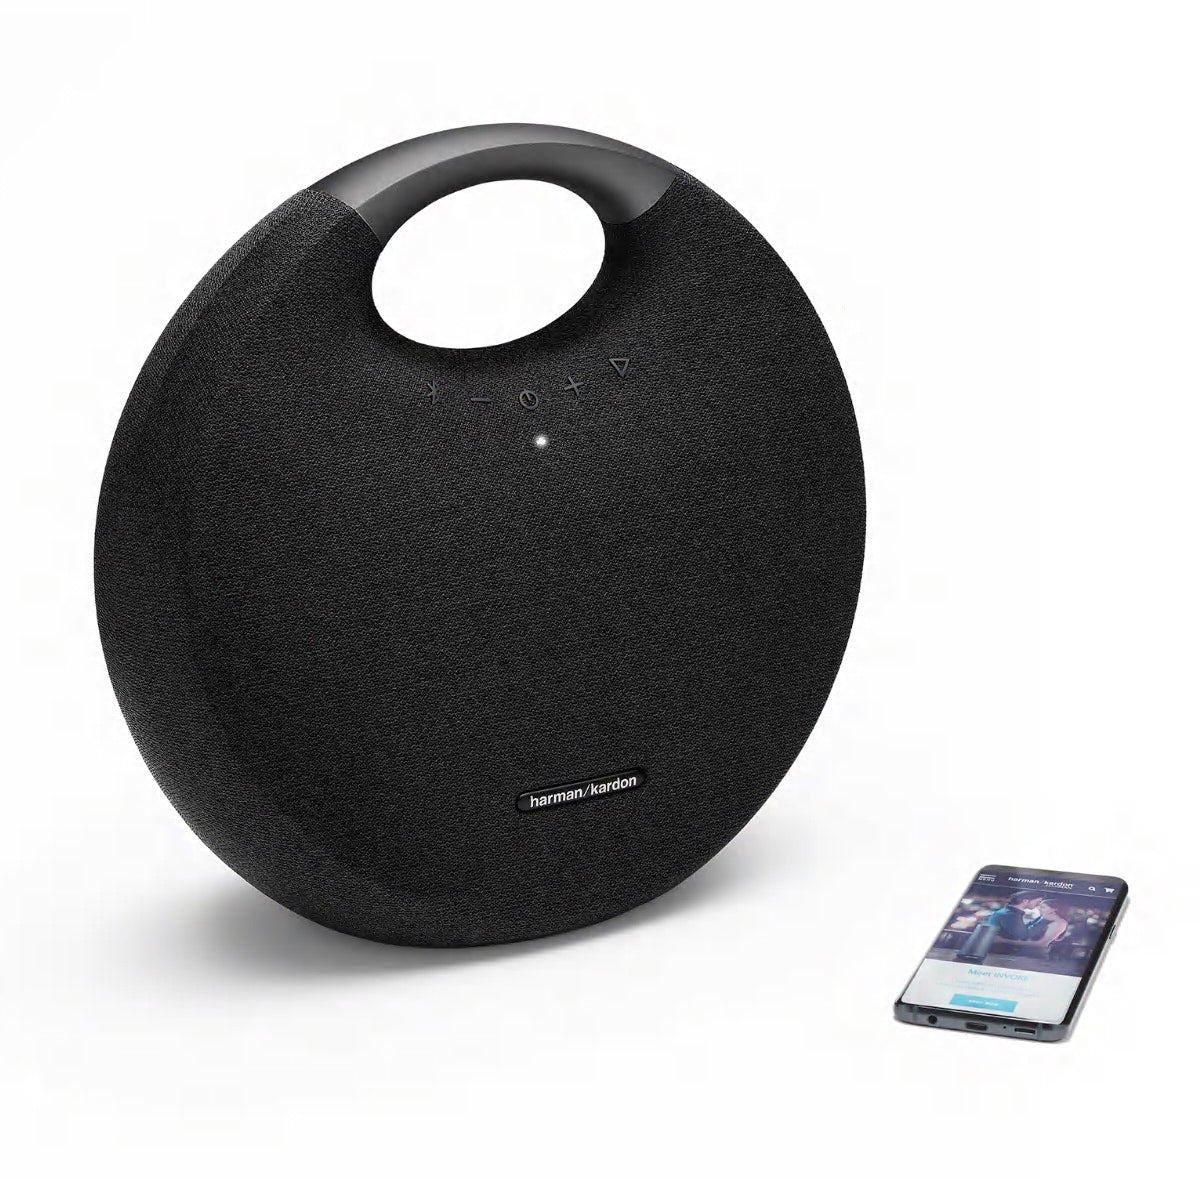 Harman Kardon Onyx Studio 6 - Portable Bluetooth speaker, Harman Kardon, Portable Bluetooth Speaker - AVStore.in